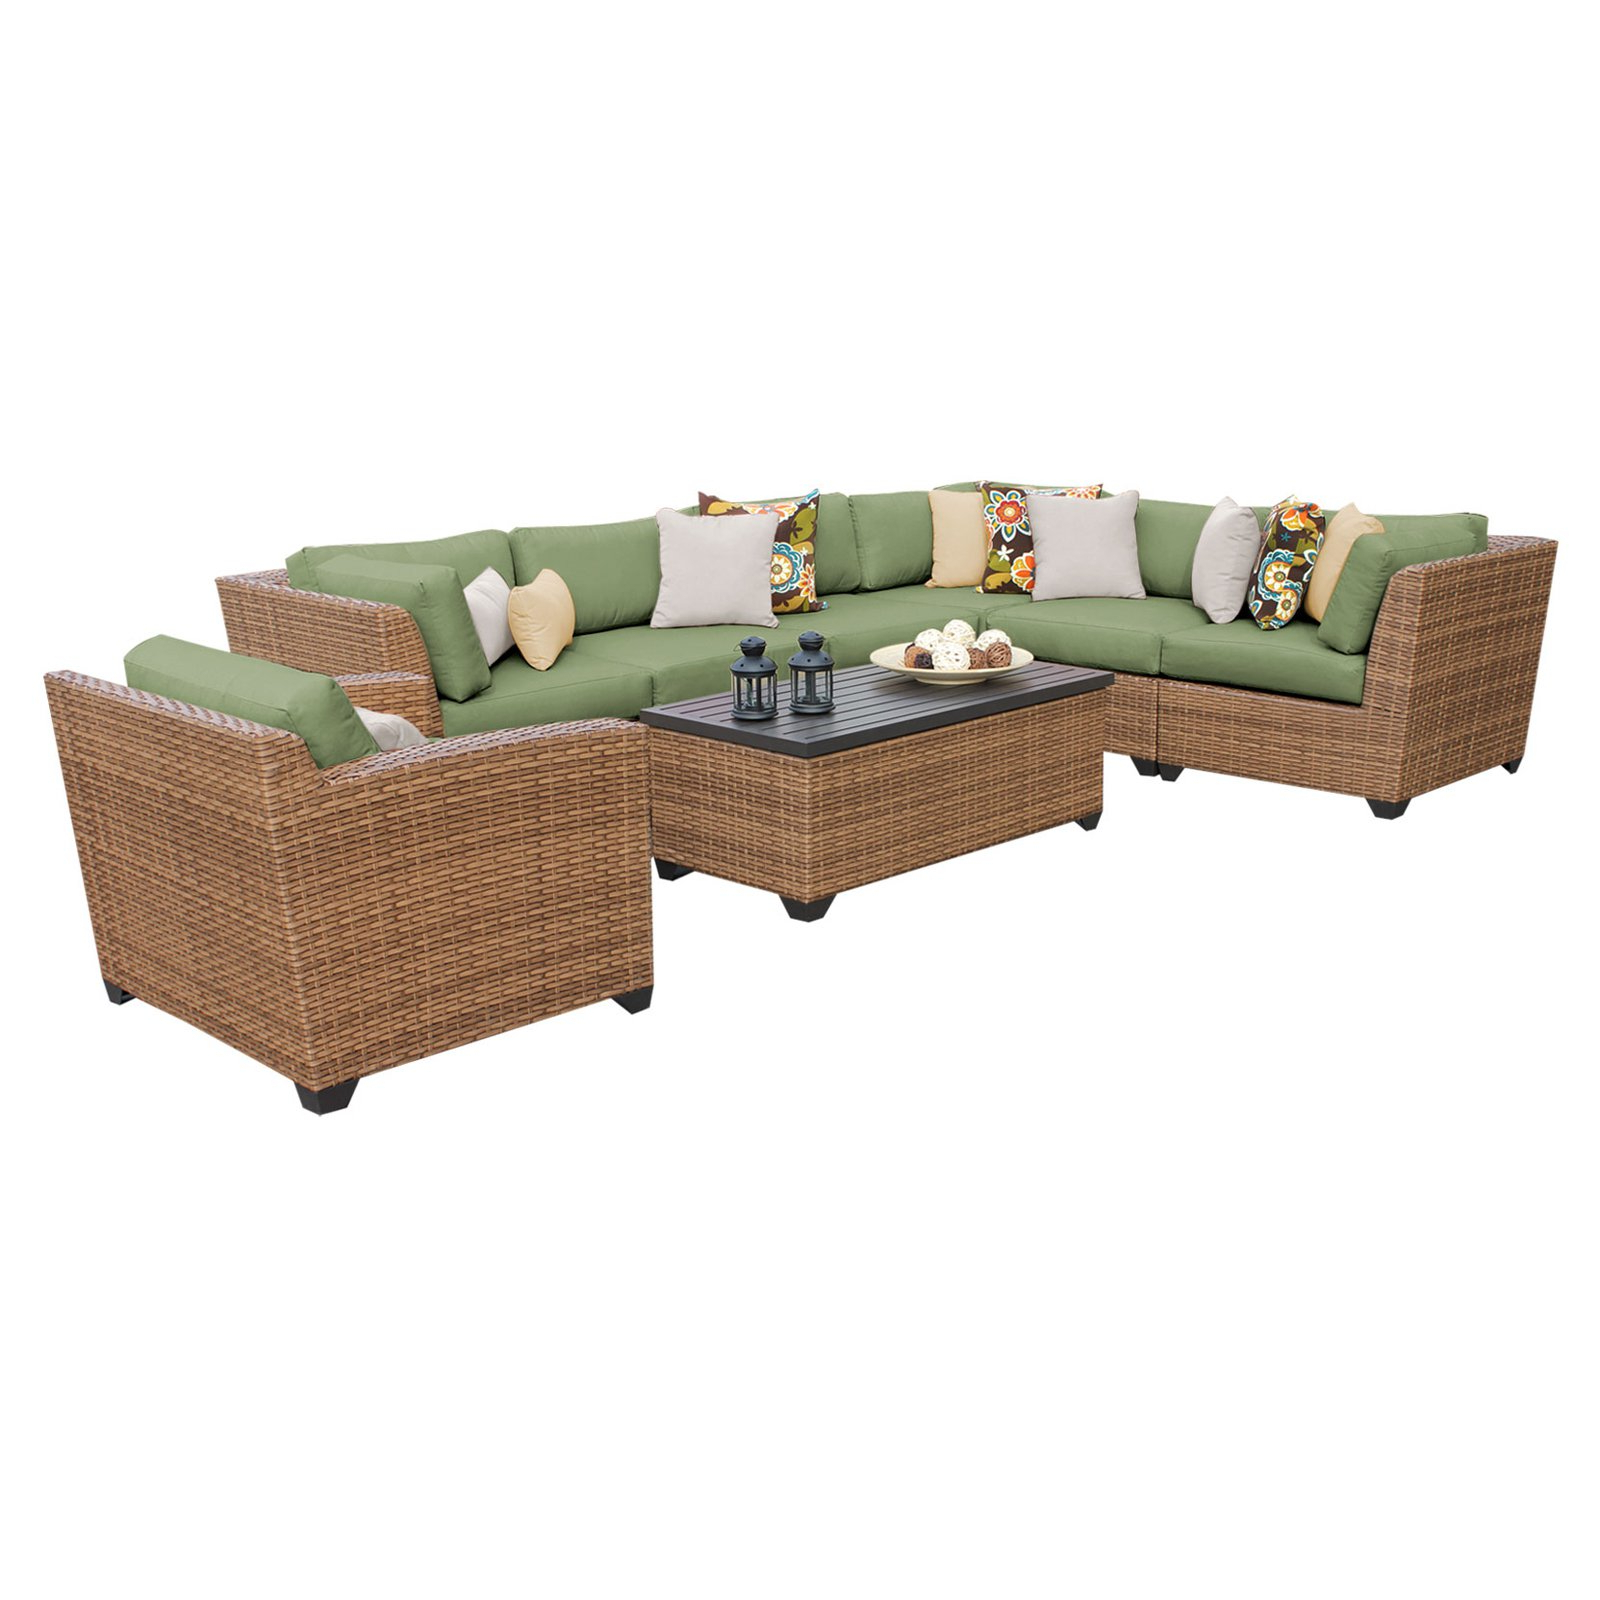 Laguna Outdoor Sofas With Cushions Intended For Most Recent Outdoor Tk Classics Laguna Wicker 8 Piece Patio Conversation (View 5 of 20)